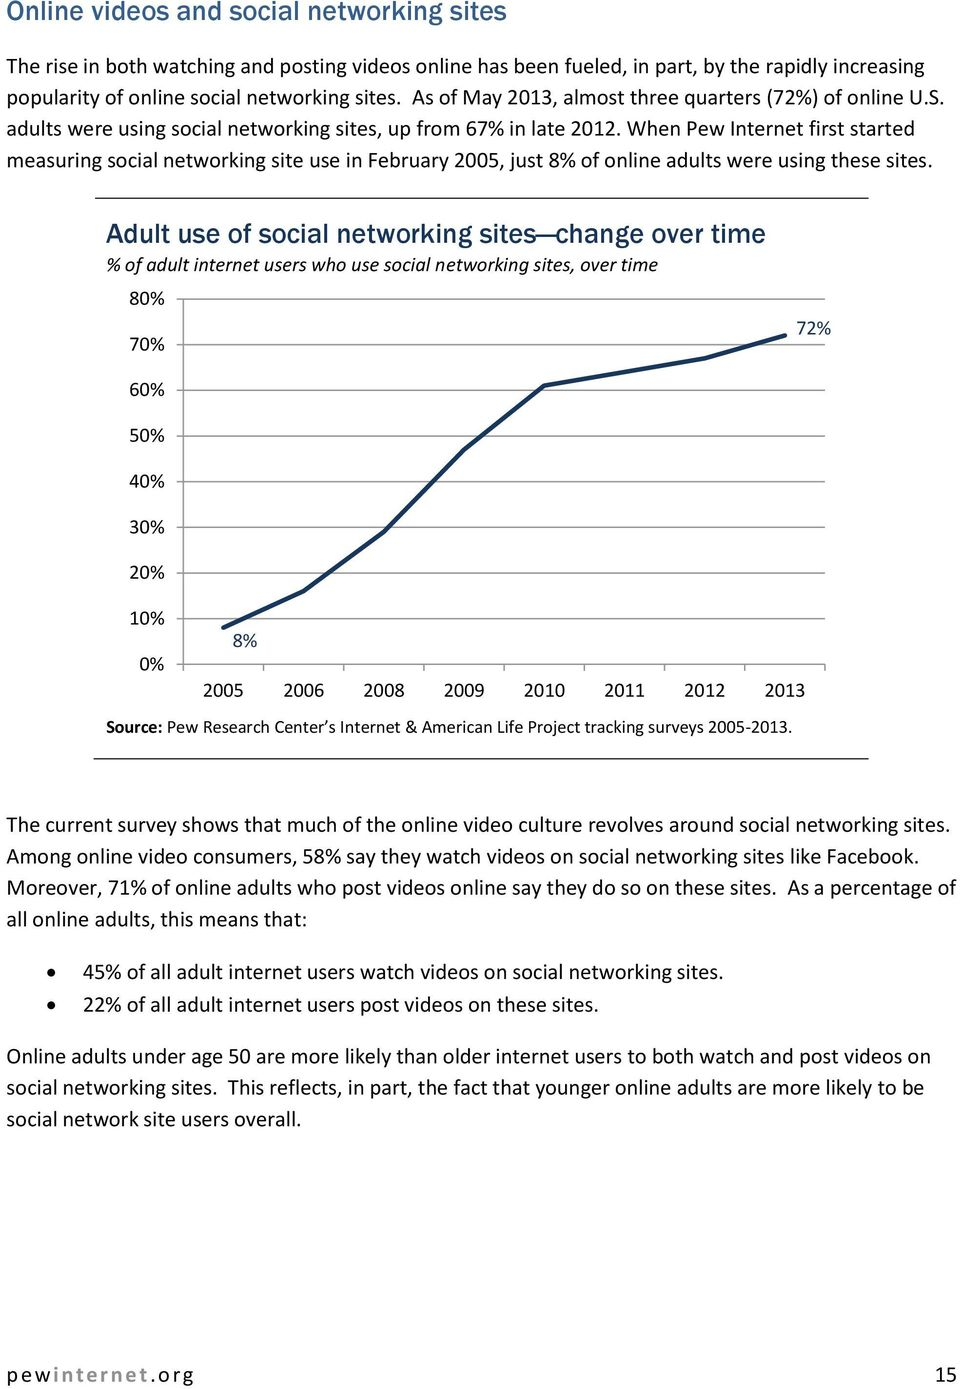 When Pew Internet first started measuring social networking site use in February 2005, just 8% of online adults were using these sites.